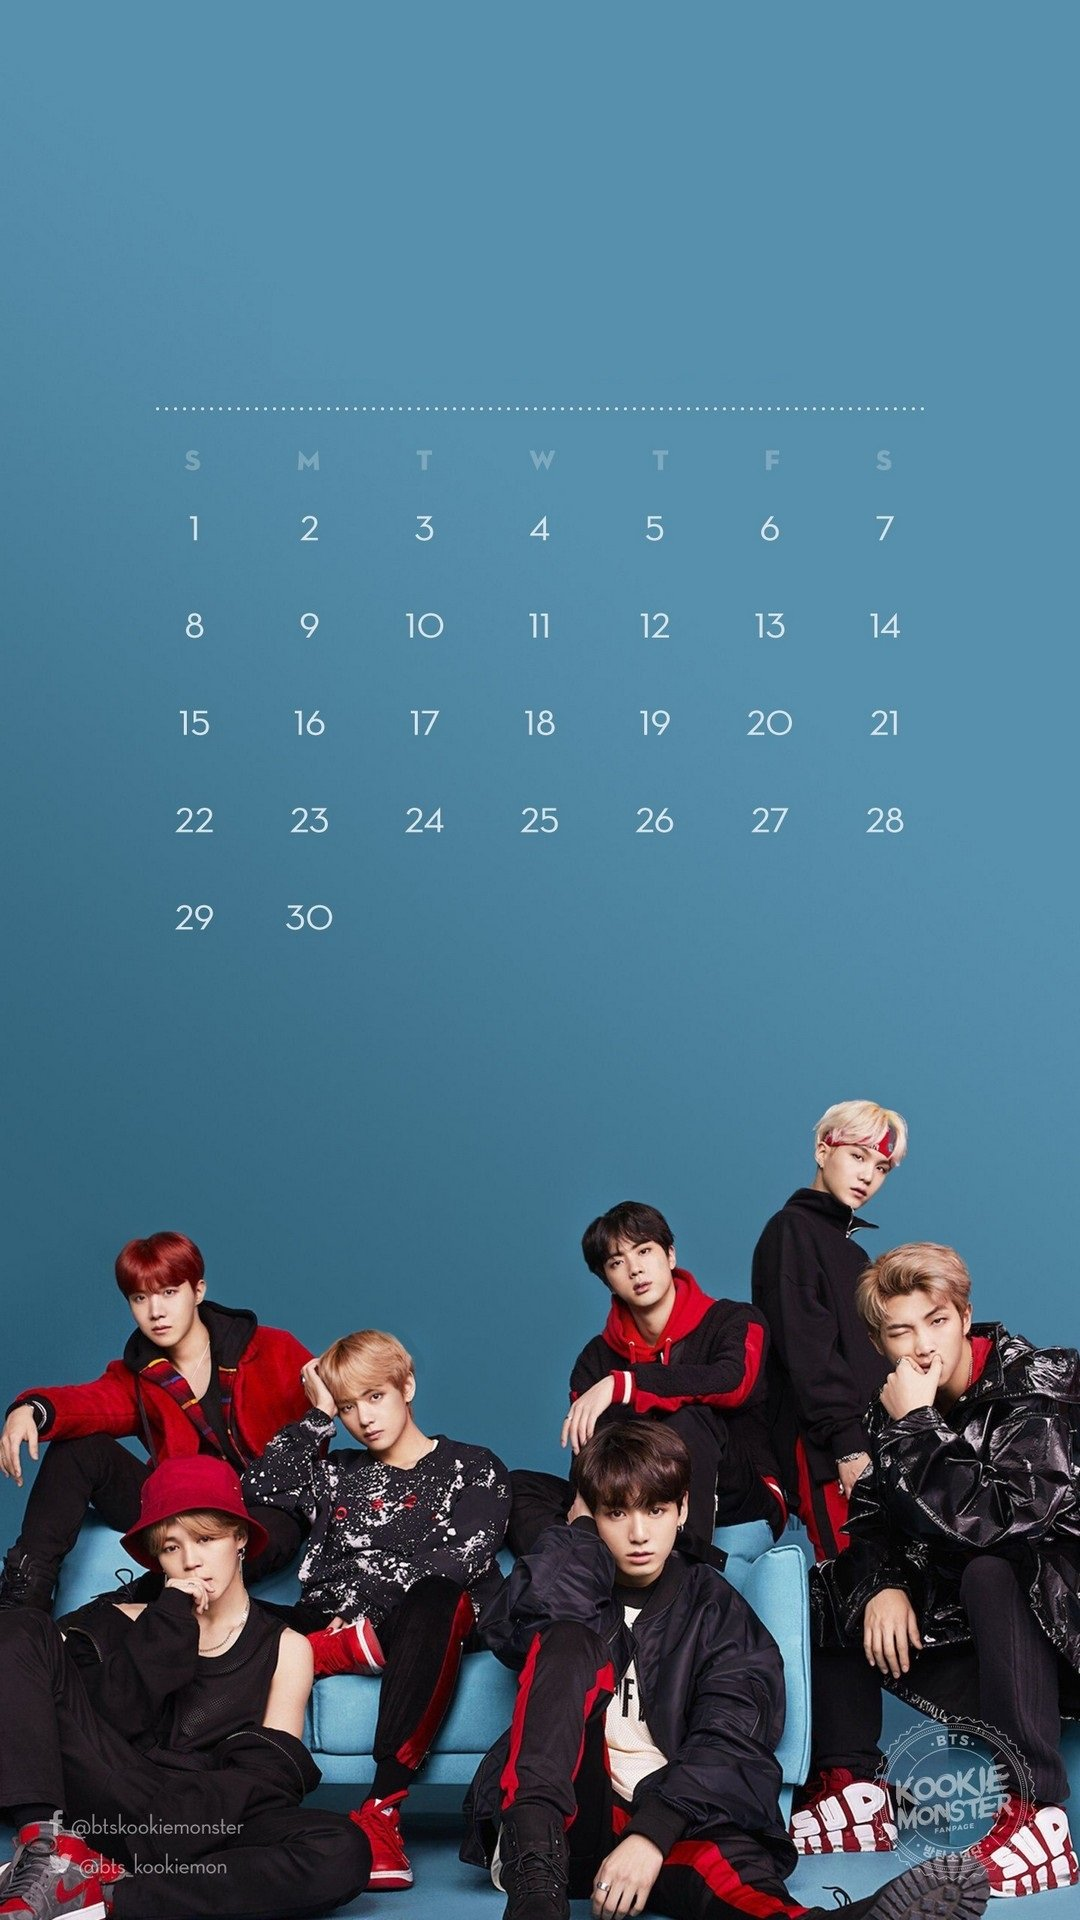 Wallpapers iPhone BTS 2020 3D iPhone Wallpaper 1080x1920